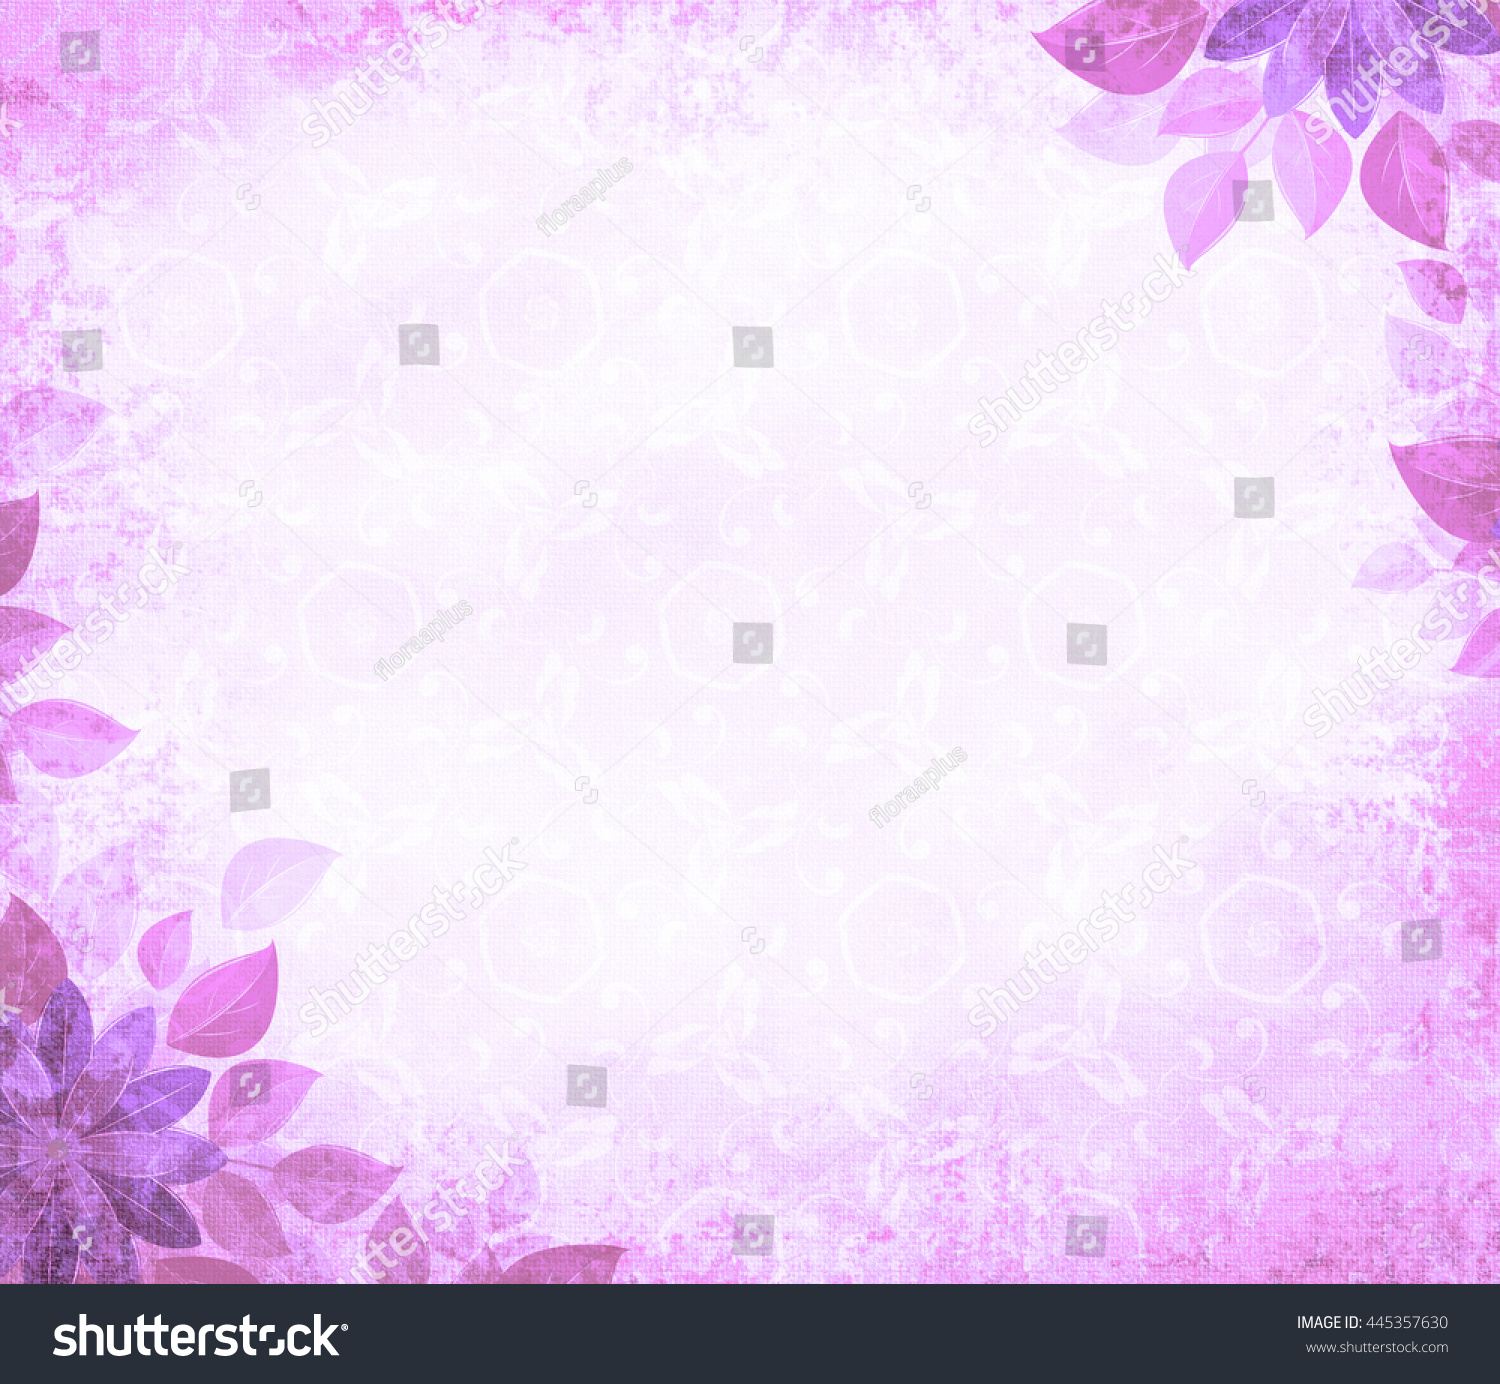 Background grunge with flower corners, purple. The basis for design or the text on a rough cloth, in ancient style.